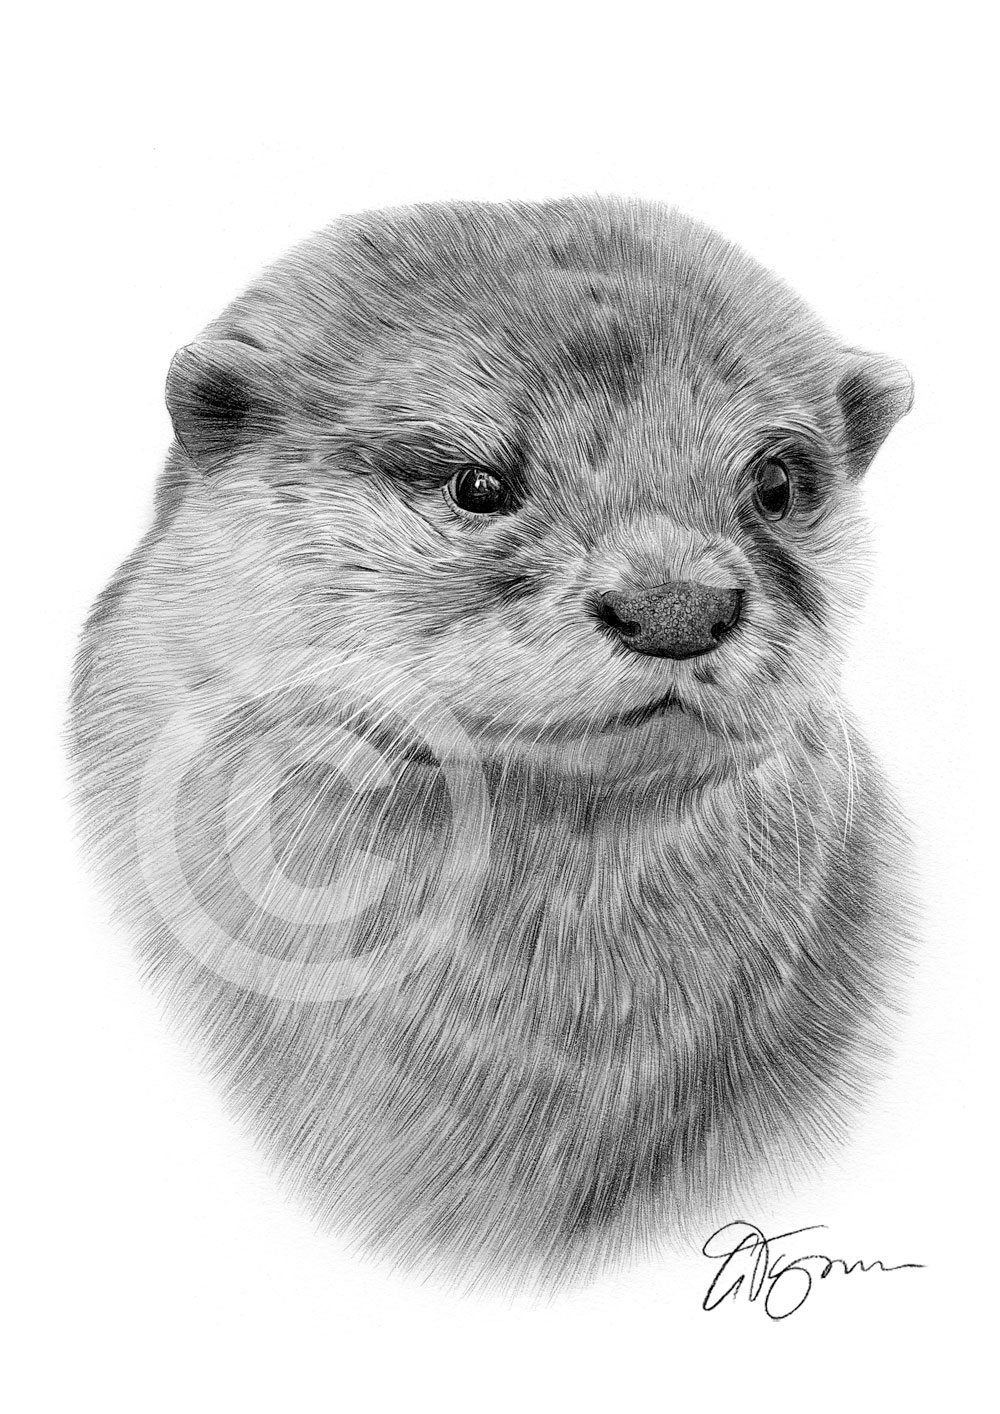 Drawn otter pencil drawing Pencil Pencil drawing of Gary